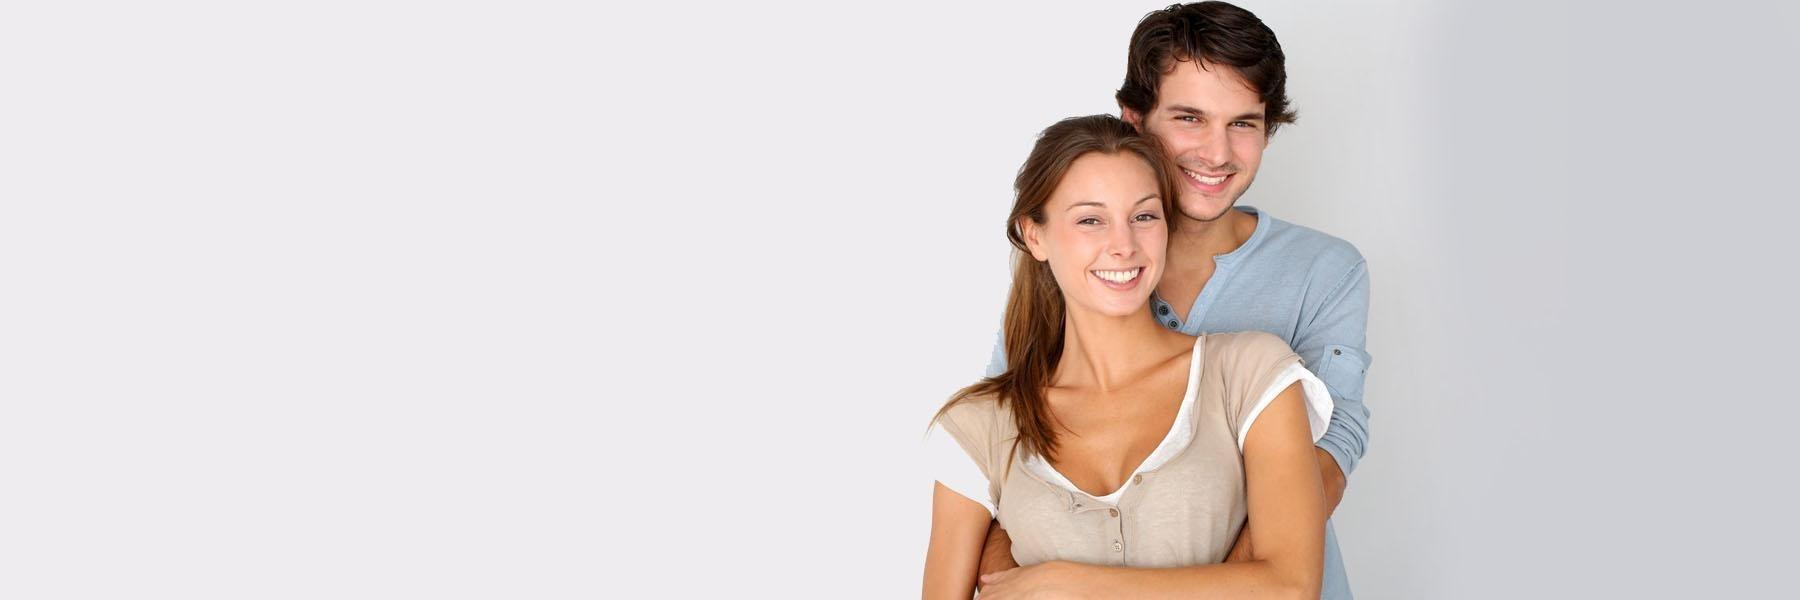 Couple | Dental Veneers Clinton Township